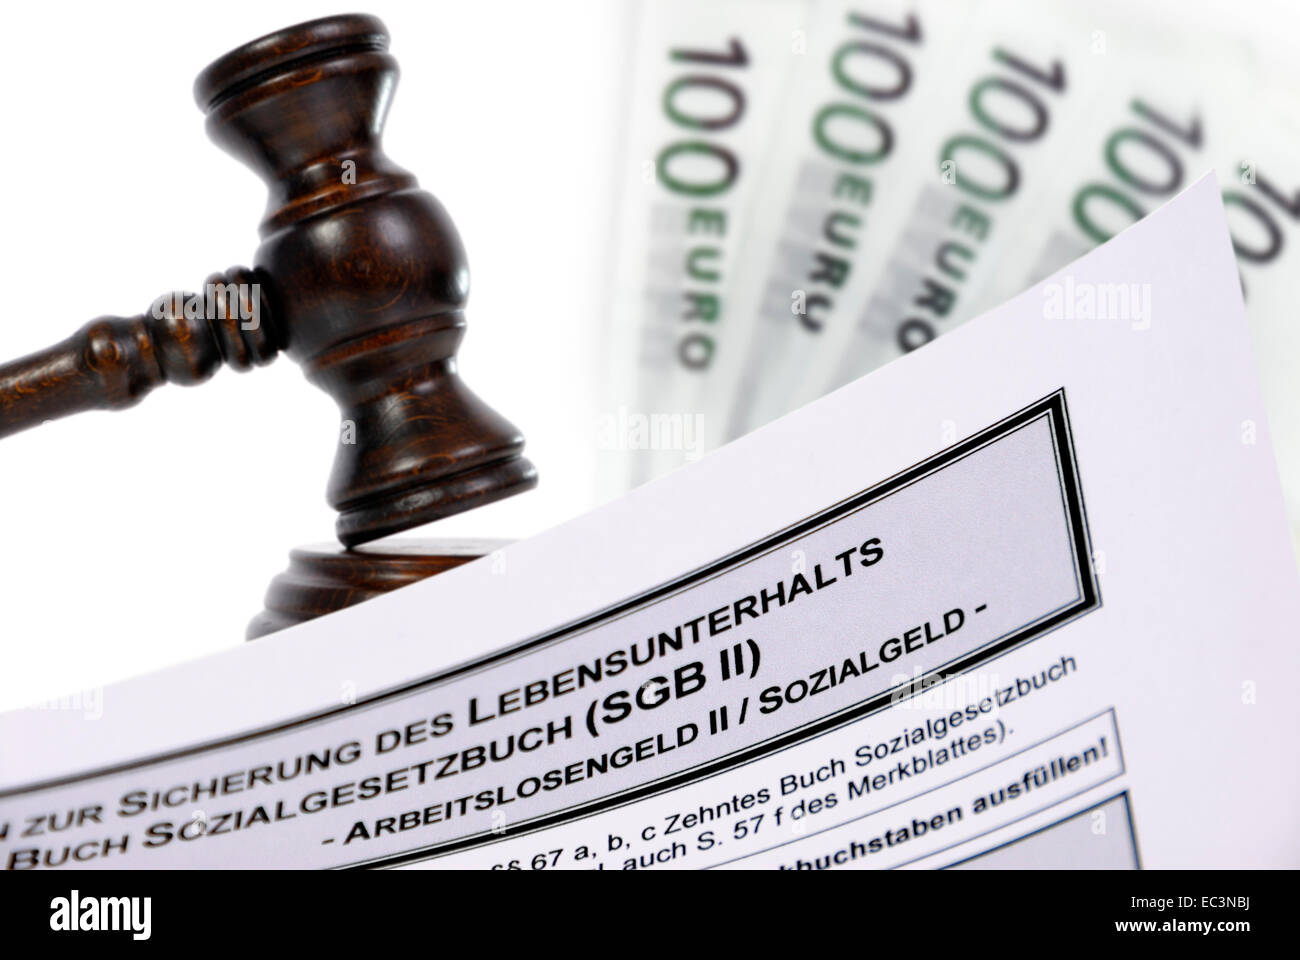 unemployment benefit stock photos  u0026 unemployment benefit stock images